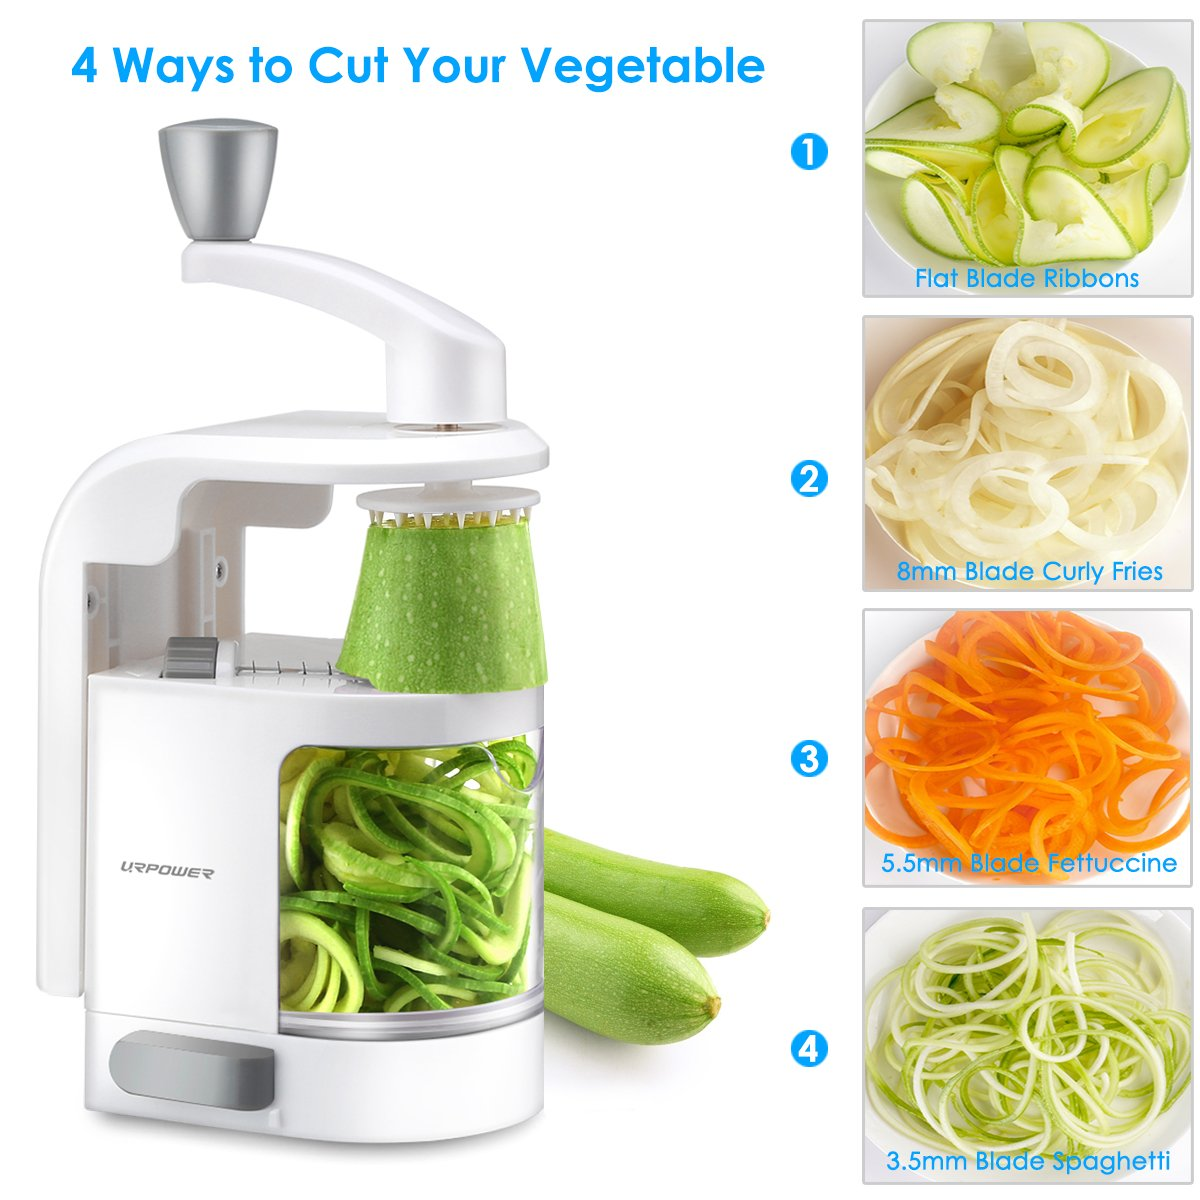 URPOWER Spiralizer Vegetable Slicer 4-Blade Vegetable Spiralizer, Veggie Pasta Spaghetti Maker, Perfect for Salad, Zucchini Noodles, Pasta and Cut Vegetables, Make Low Carb/Paleo/Gluten-Free Meals